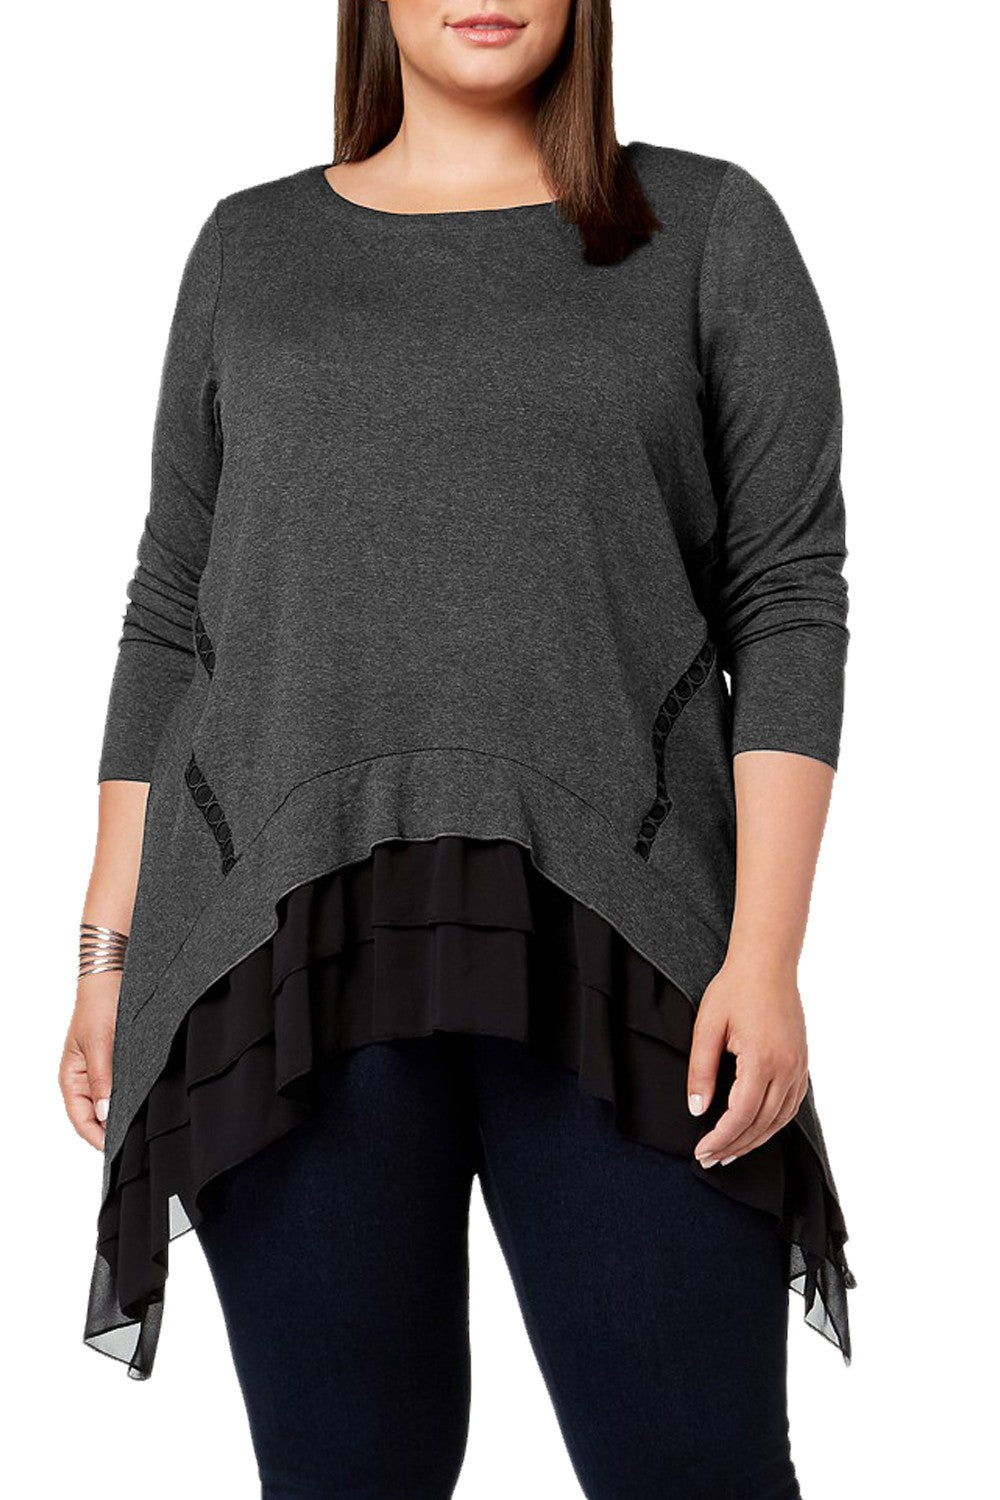 Women Ruffled Splice Plus Size Tops